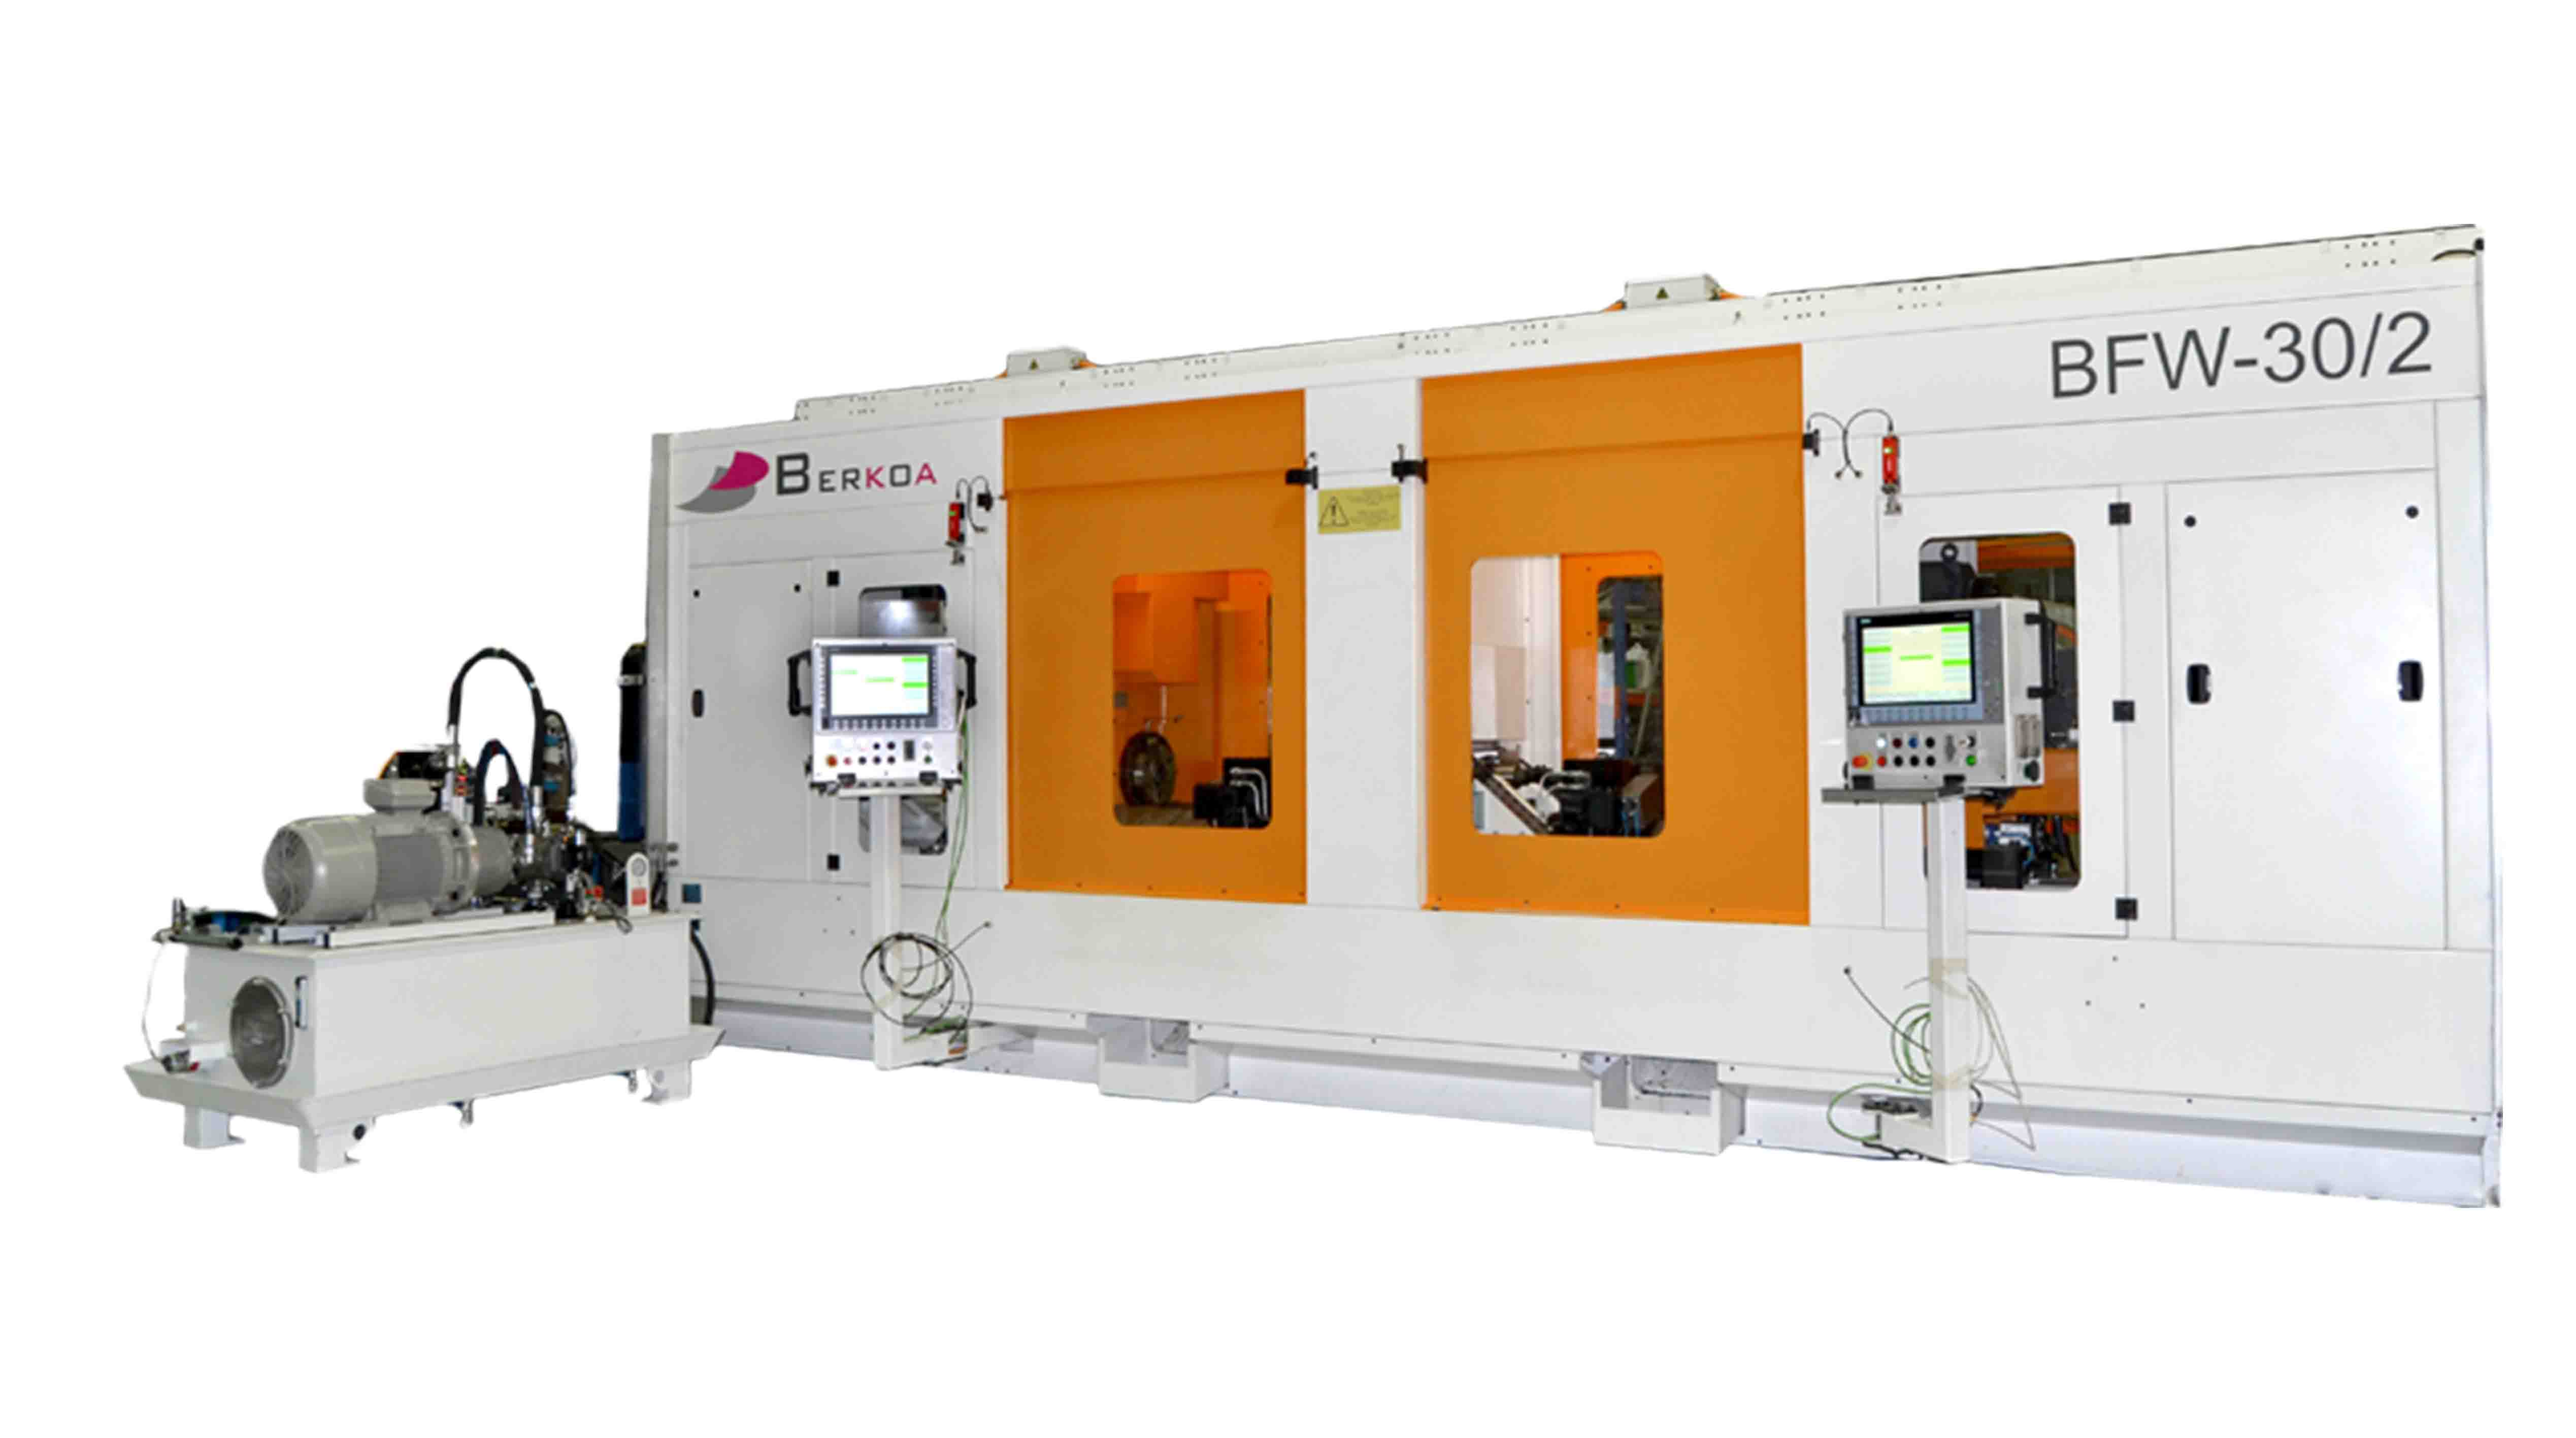 Horizontal lathes BWF-30 Friction spin welding machine with two stations